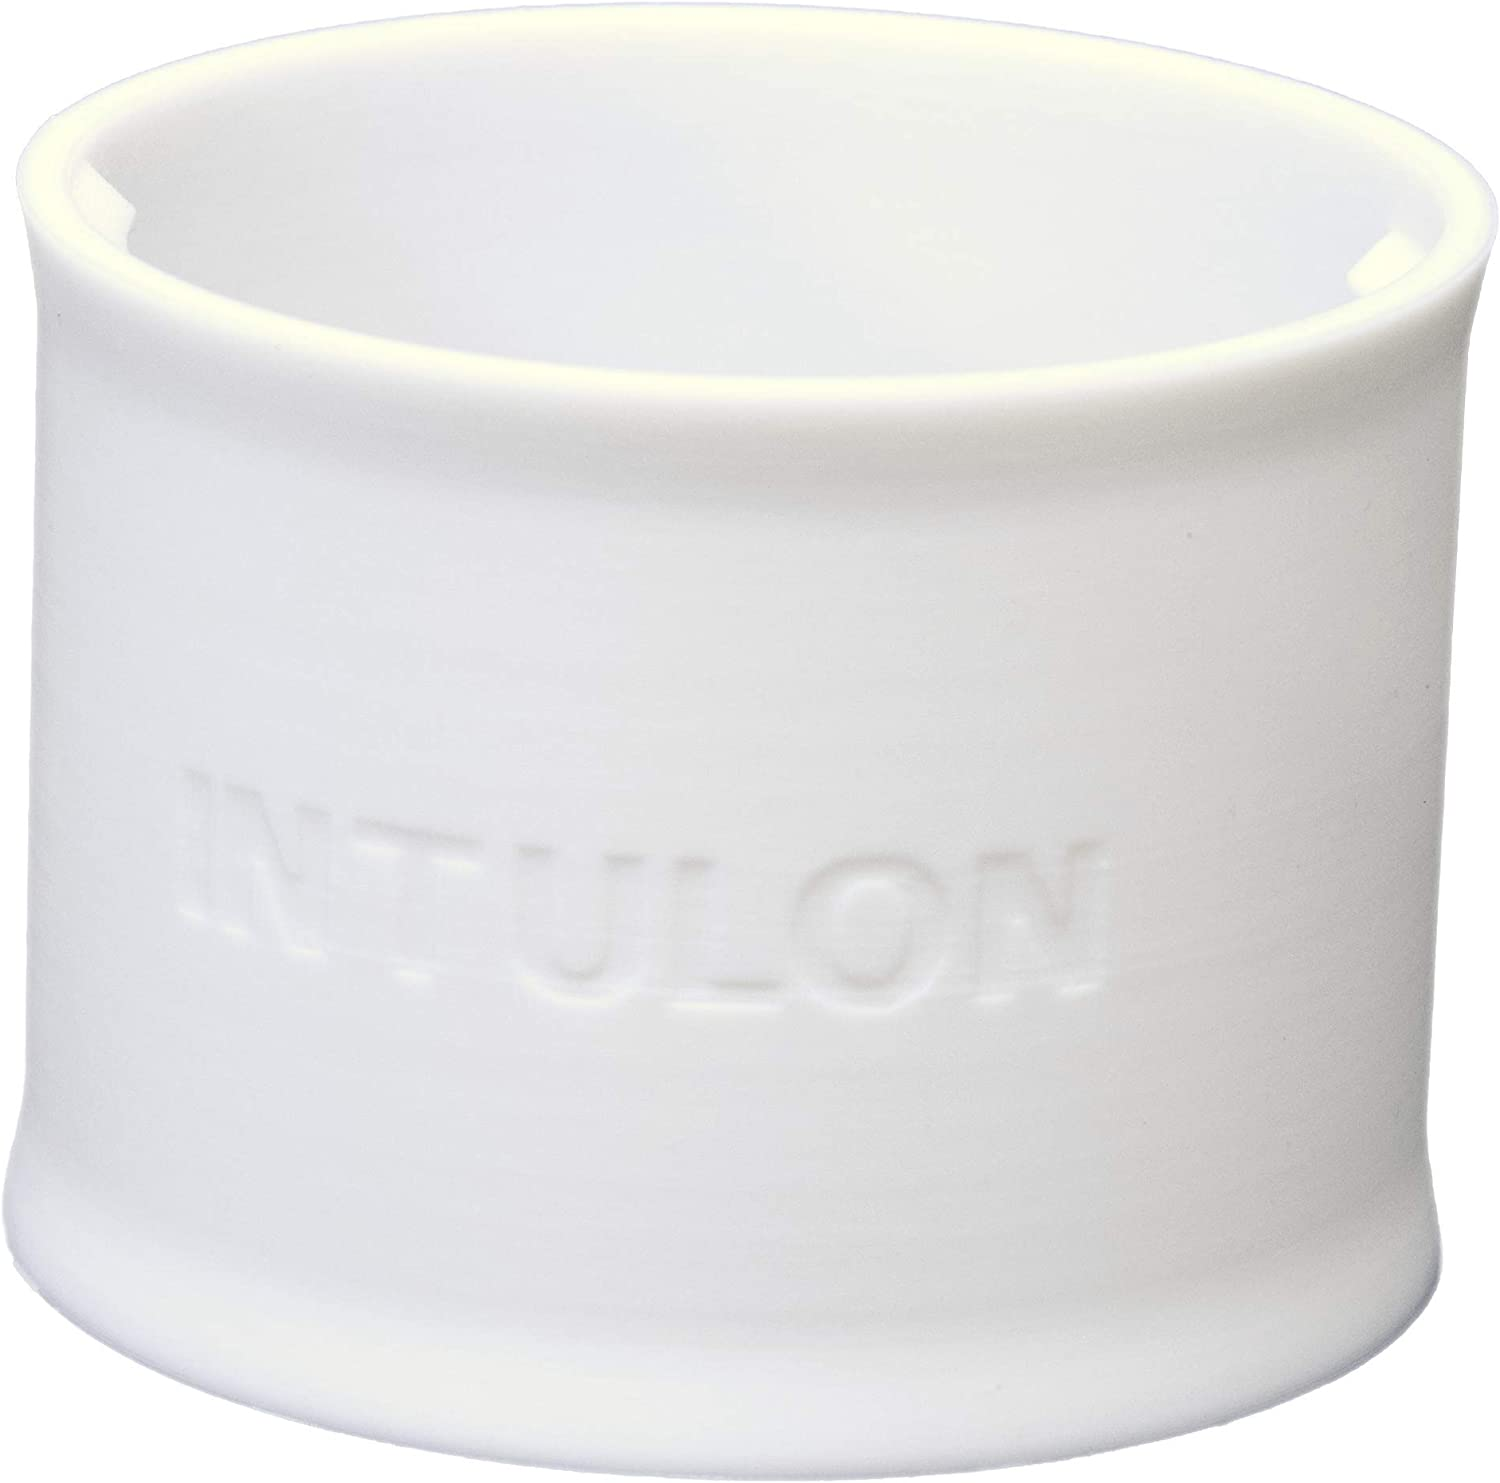 intulon Portable A/C AC Air Conditioner Exhaust Hose Coupler/Coupling - Omnidirectional Clockwise Counterclockwise Bi-Directional 5CWCPL 5CCWCPL 5CPL (5 inch)